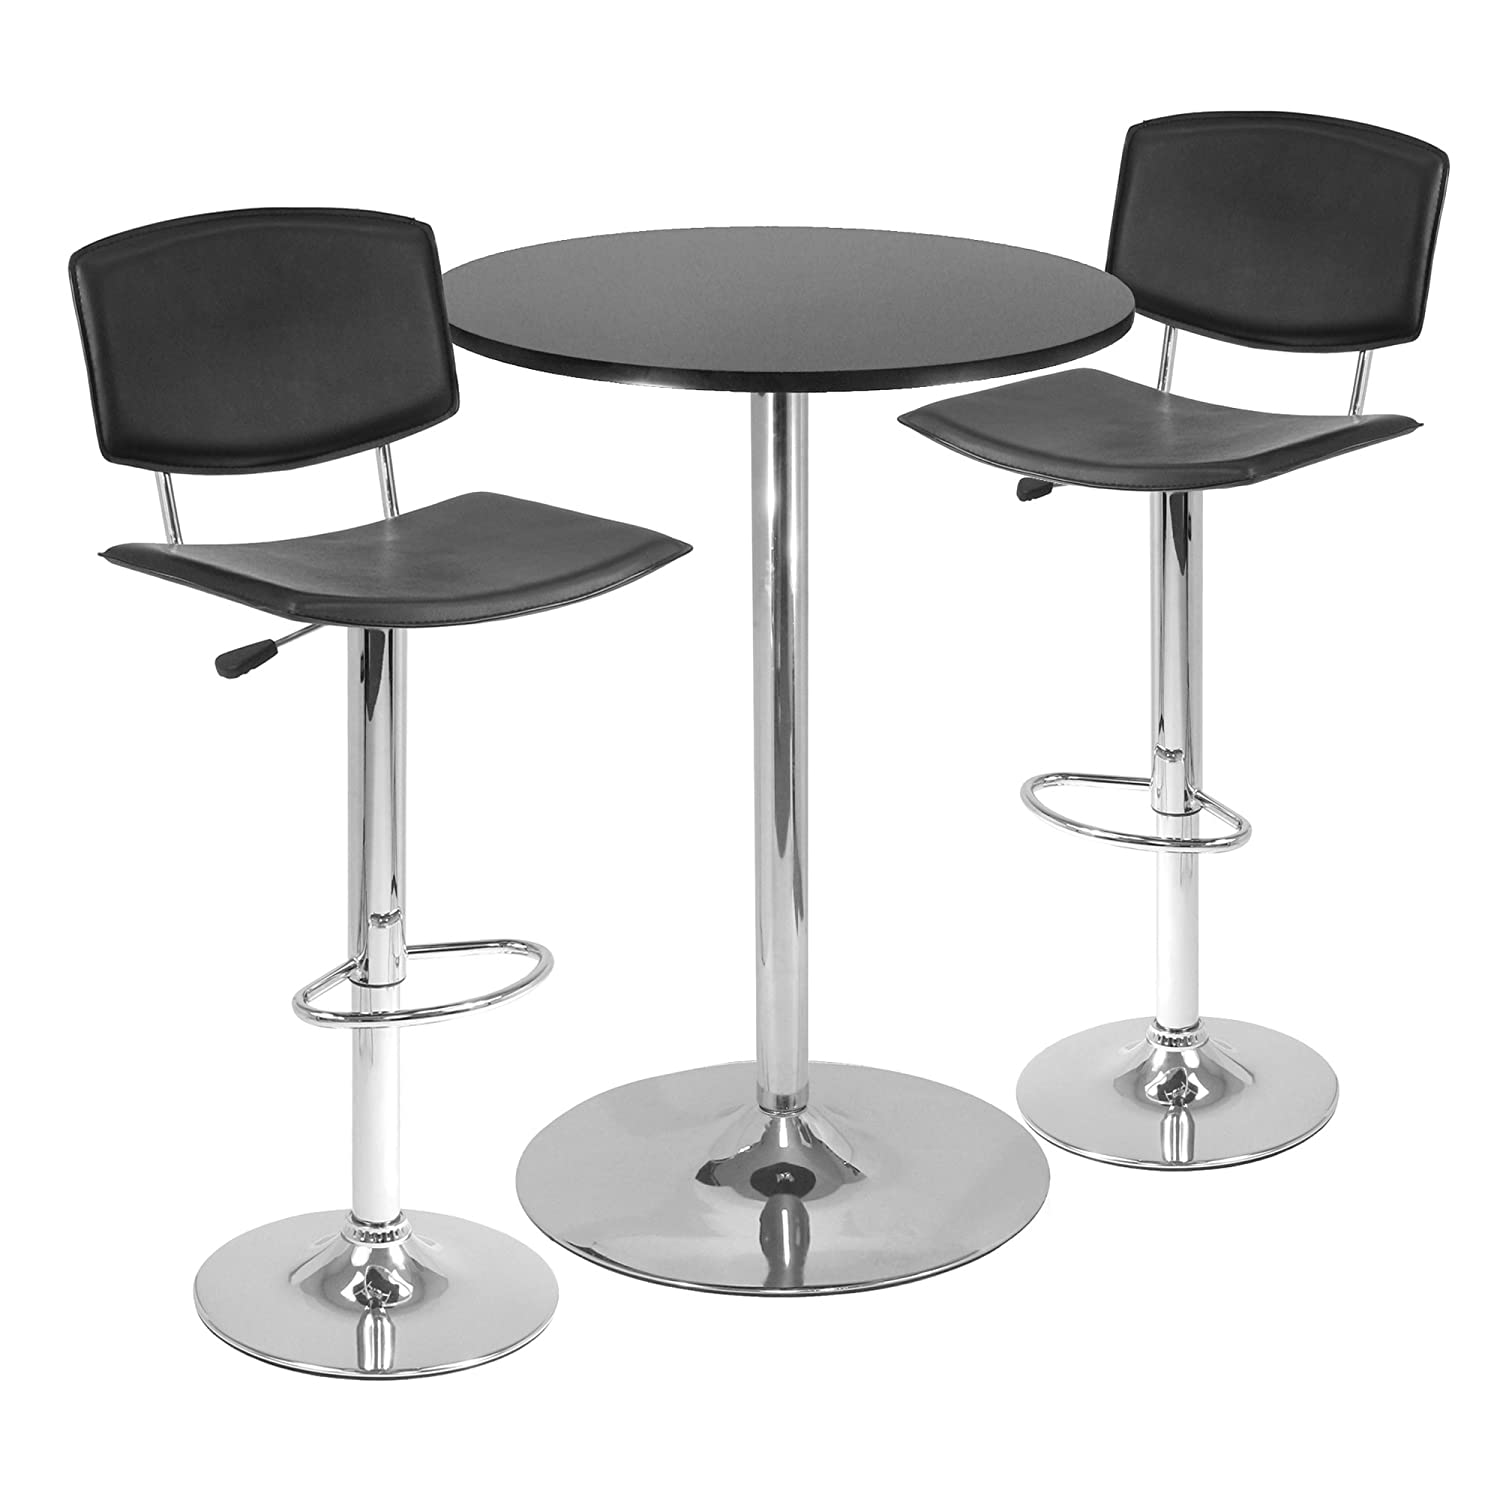 Round Bar Table And Chairs Www Pixshark Com Images